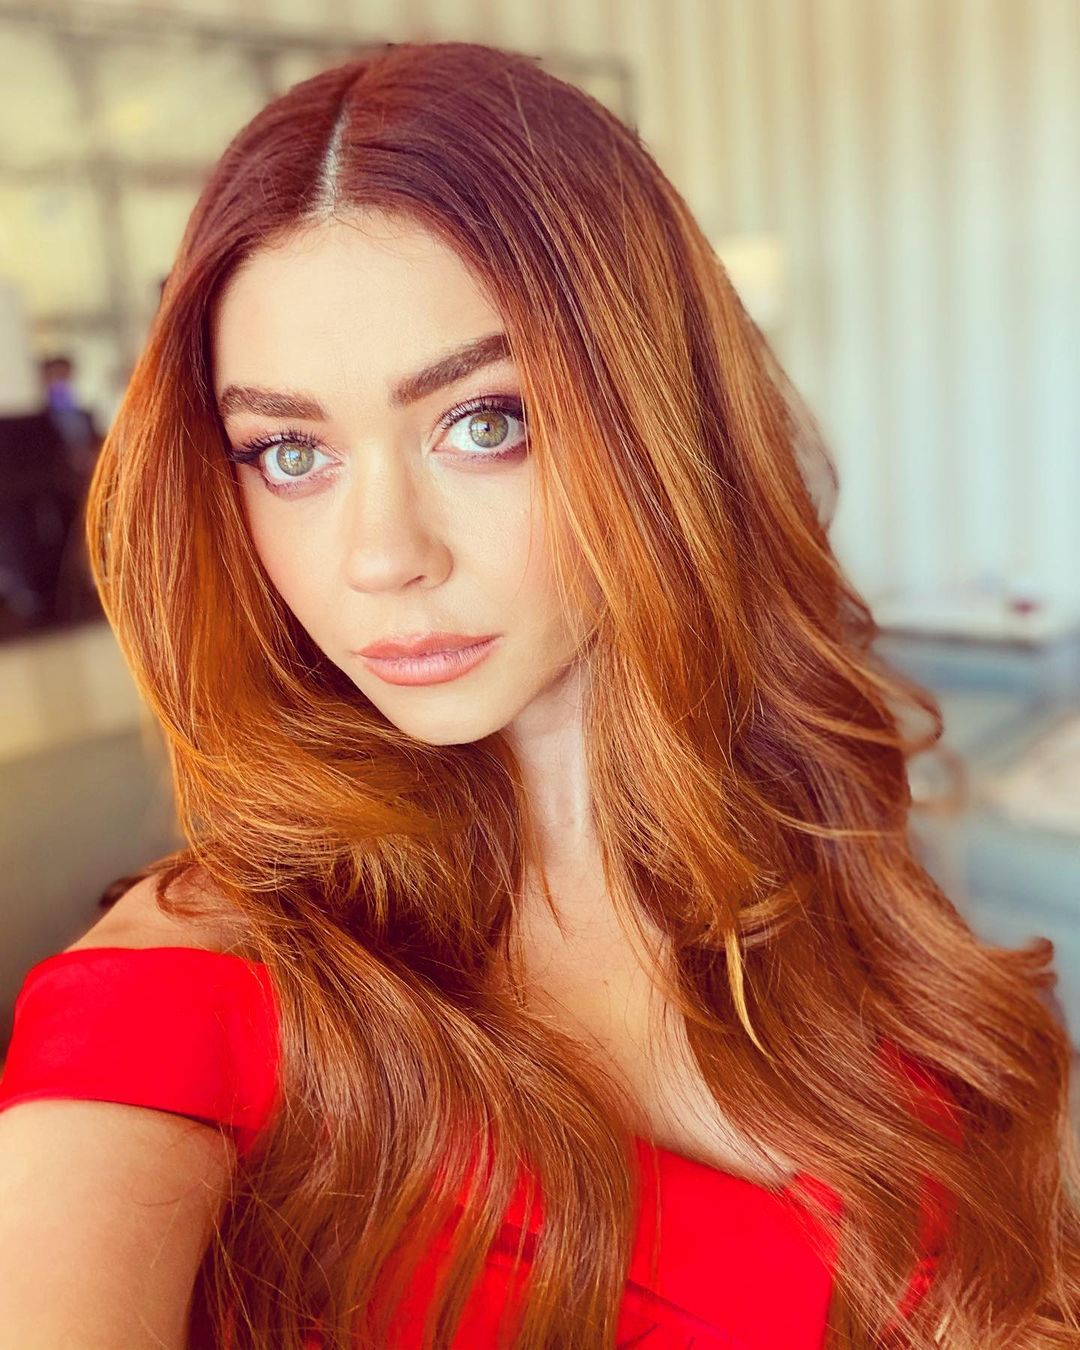 What is Sarah Hylands total net worth 2